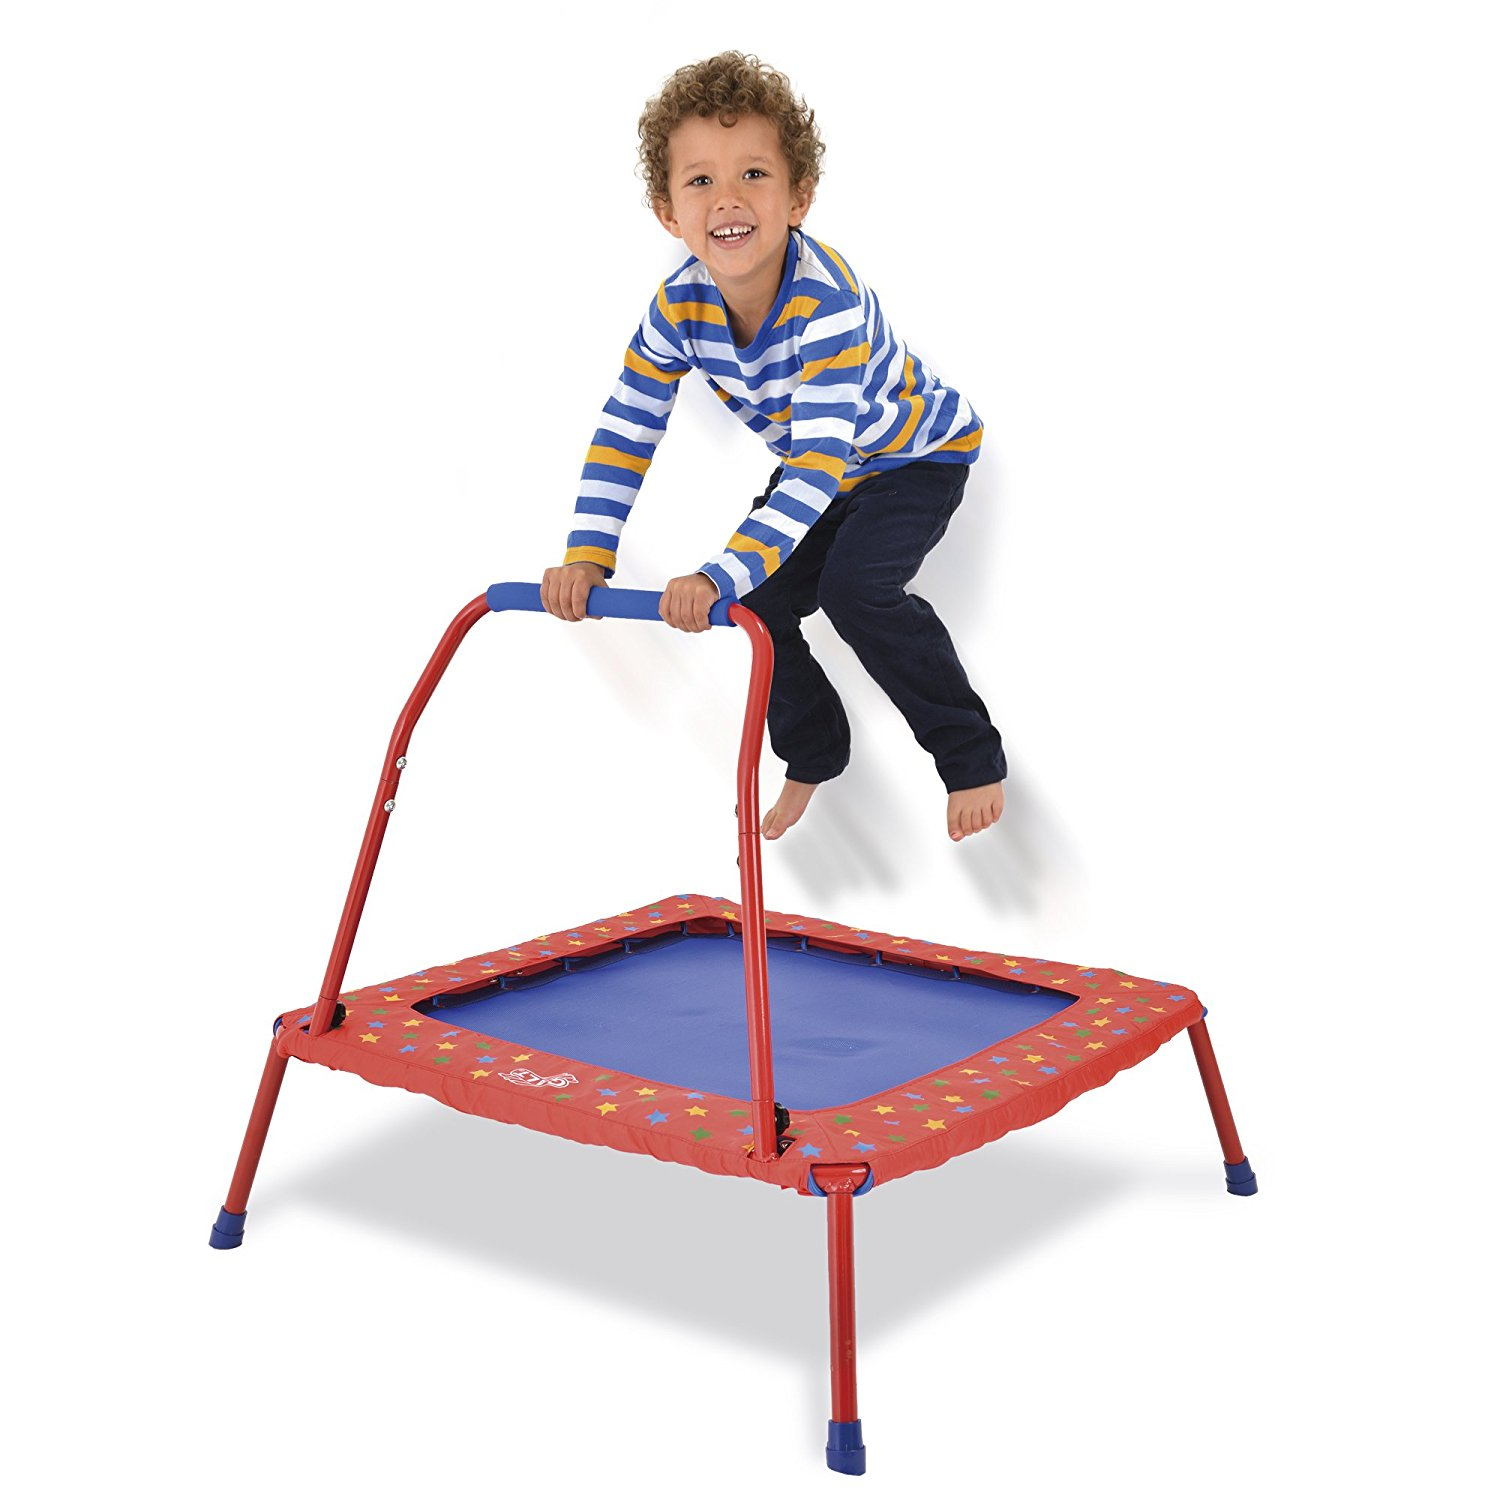 mini trampoline le comparatif meilleur trampoline meilleur trampoline. Black Bedroom Furniture Sets. Home Design Ideas